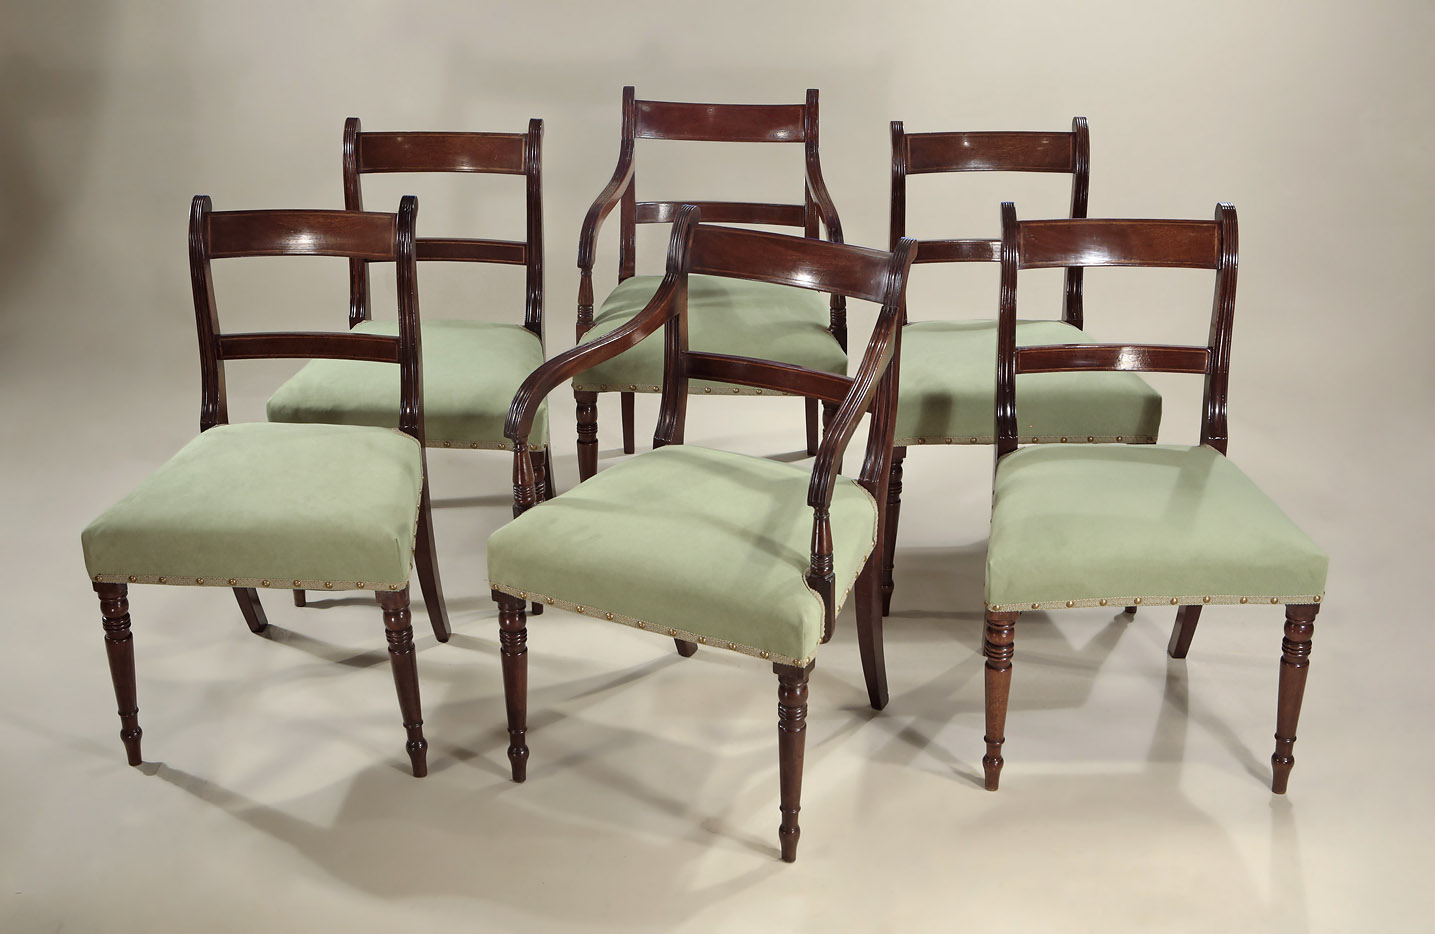 Set of Six Late Georgian Inlaid Mahogany Dining Chairs, England, c1815-20 - SET OF 6 LATE GEORGIAN INLAID MAHOGANY DINING CHAIRS, England, C1815